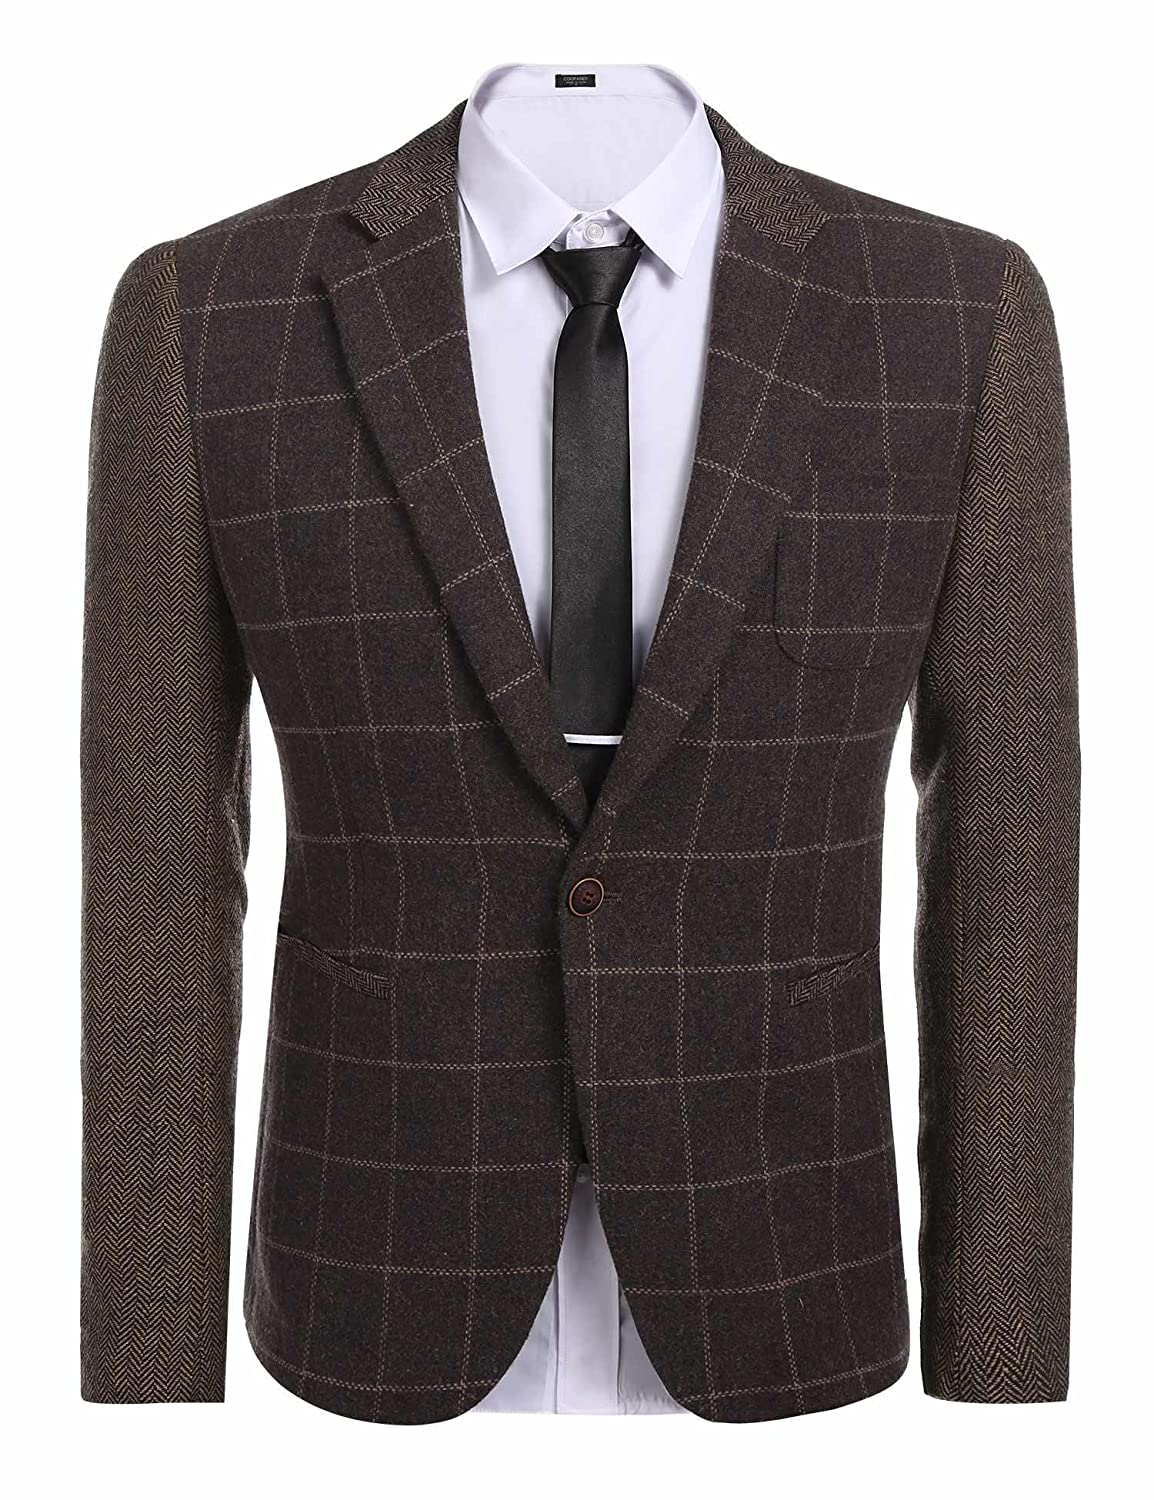 JINIDU Mens Plaid Suit Regular Fit One Button Tweed Blazer Jacket Business Suit CXJ006395